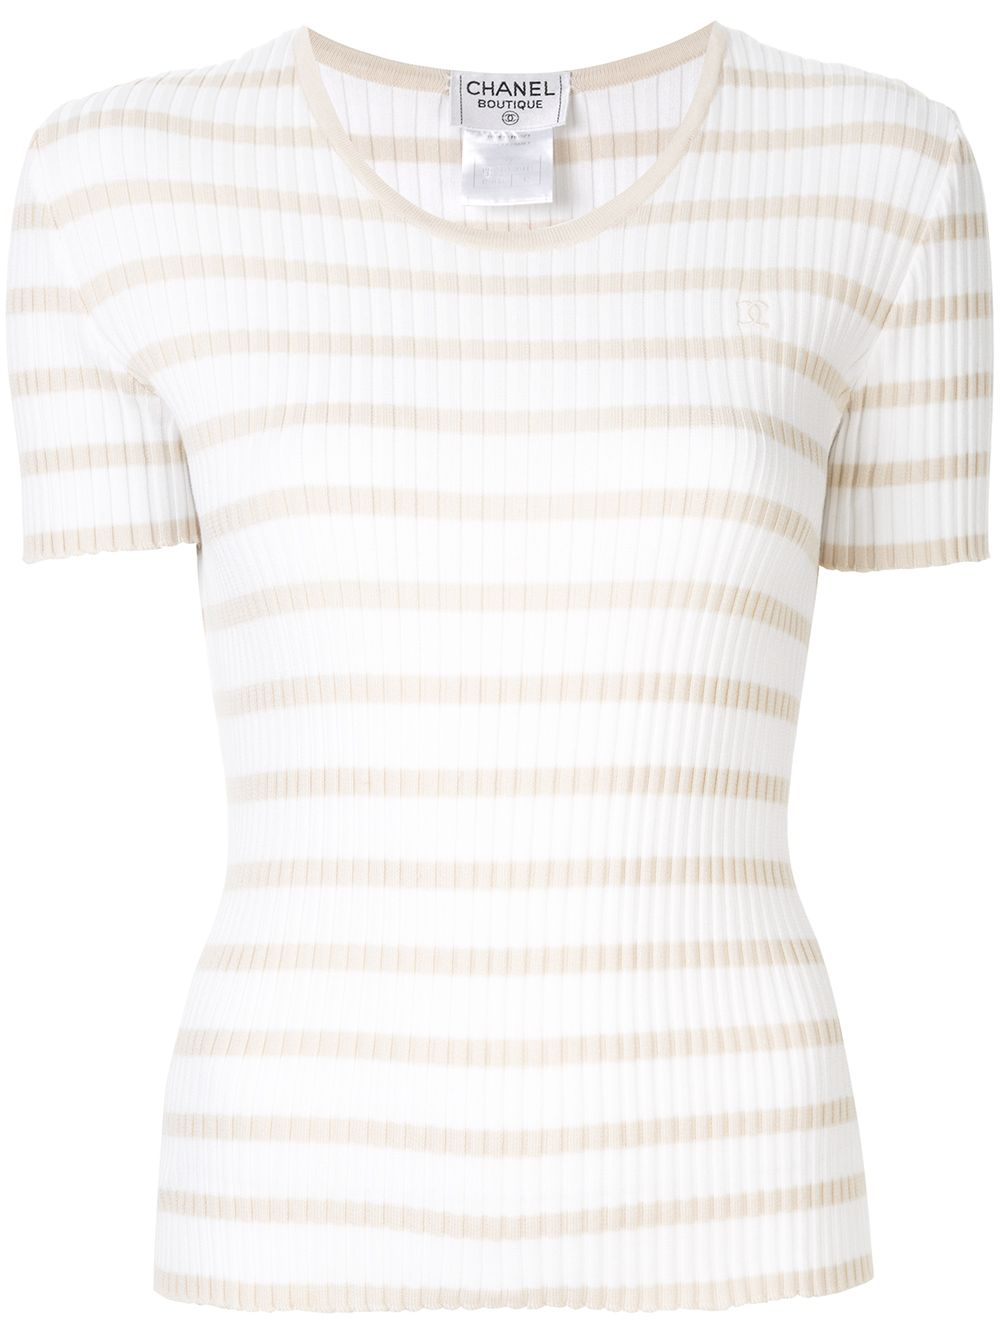 25a8129ad21a CHANEL CHANEL VINTAGE KNITTED STRIPED TOP - 白色